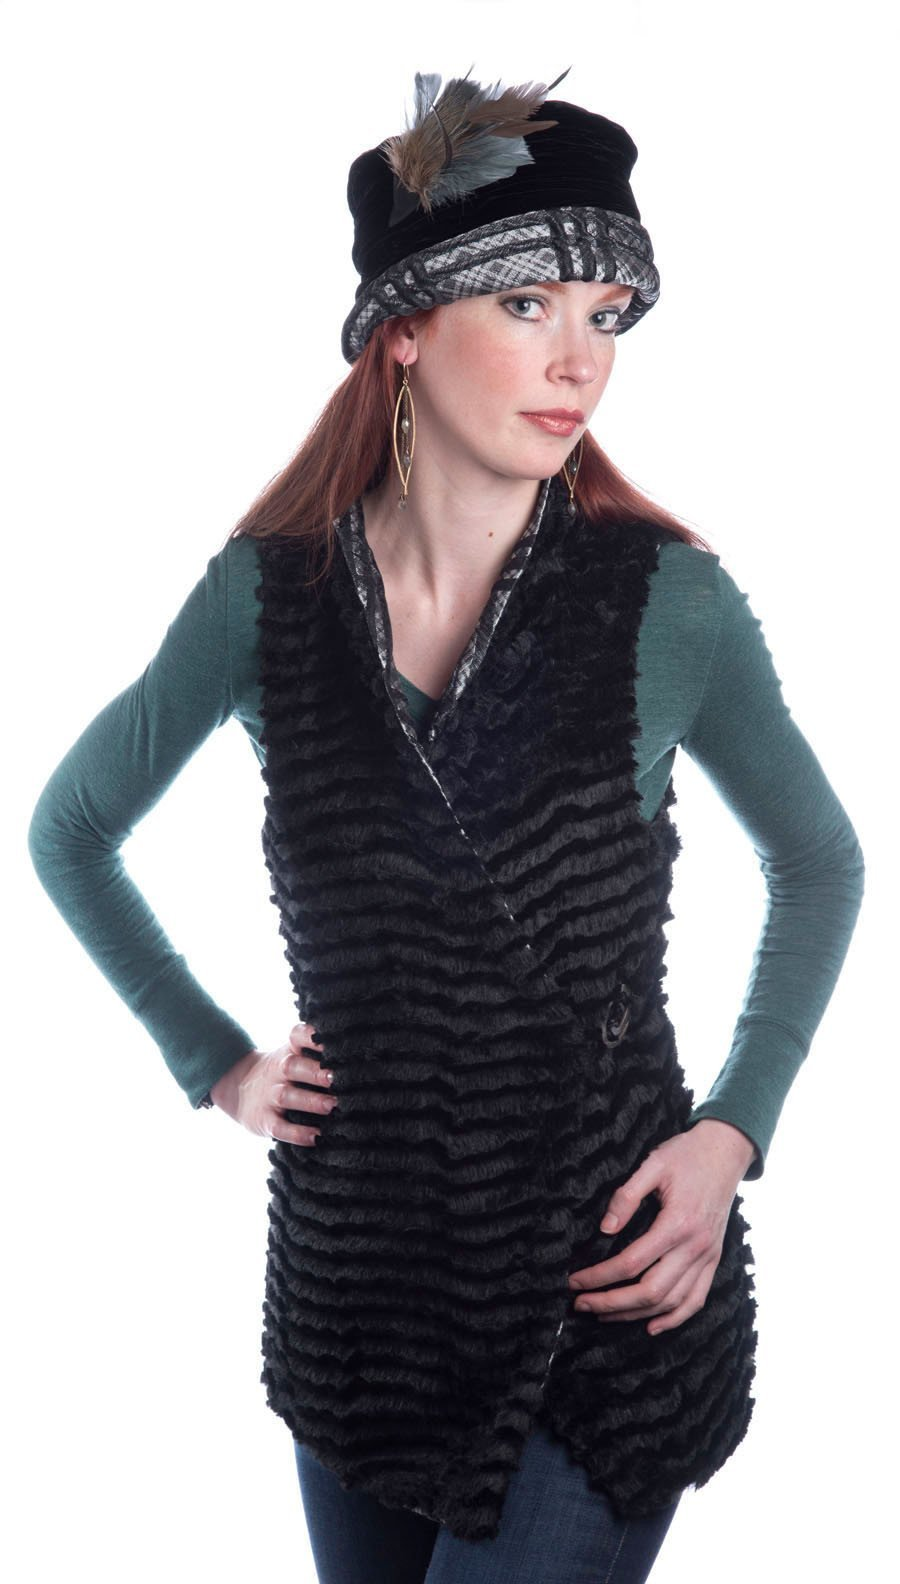 Asymmetrical Vest, Reversible less pockets - Silver Plaid Upholstery with Desert Sand in Midnight Faux Fur (One Small Left!)